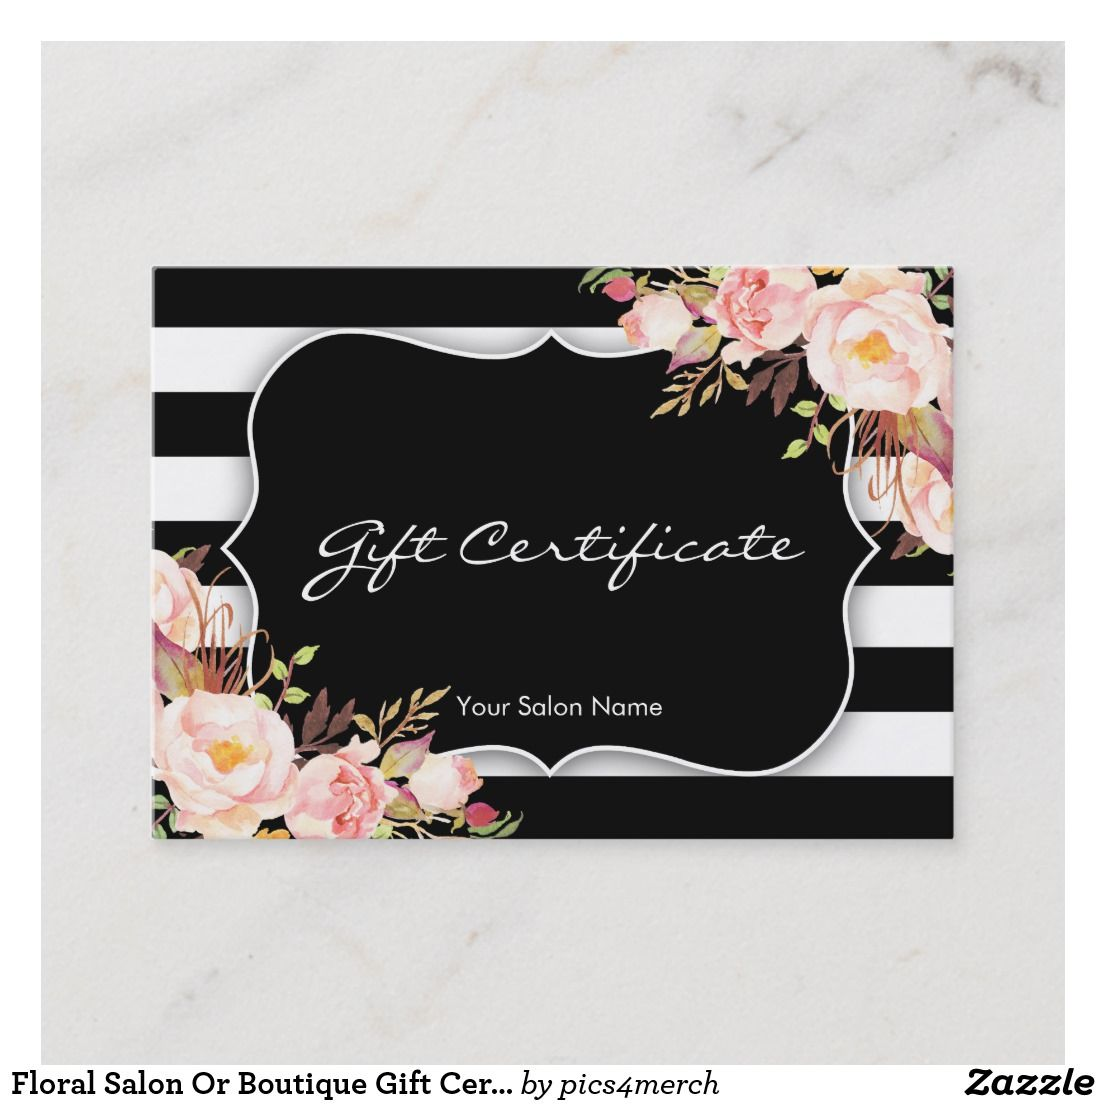 Watercolor Watercolor Flowers Watercolor Floral Gift Certificate Download Premade Gift Gift Card Template Gift Certificate Template Blank Gift Certificate